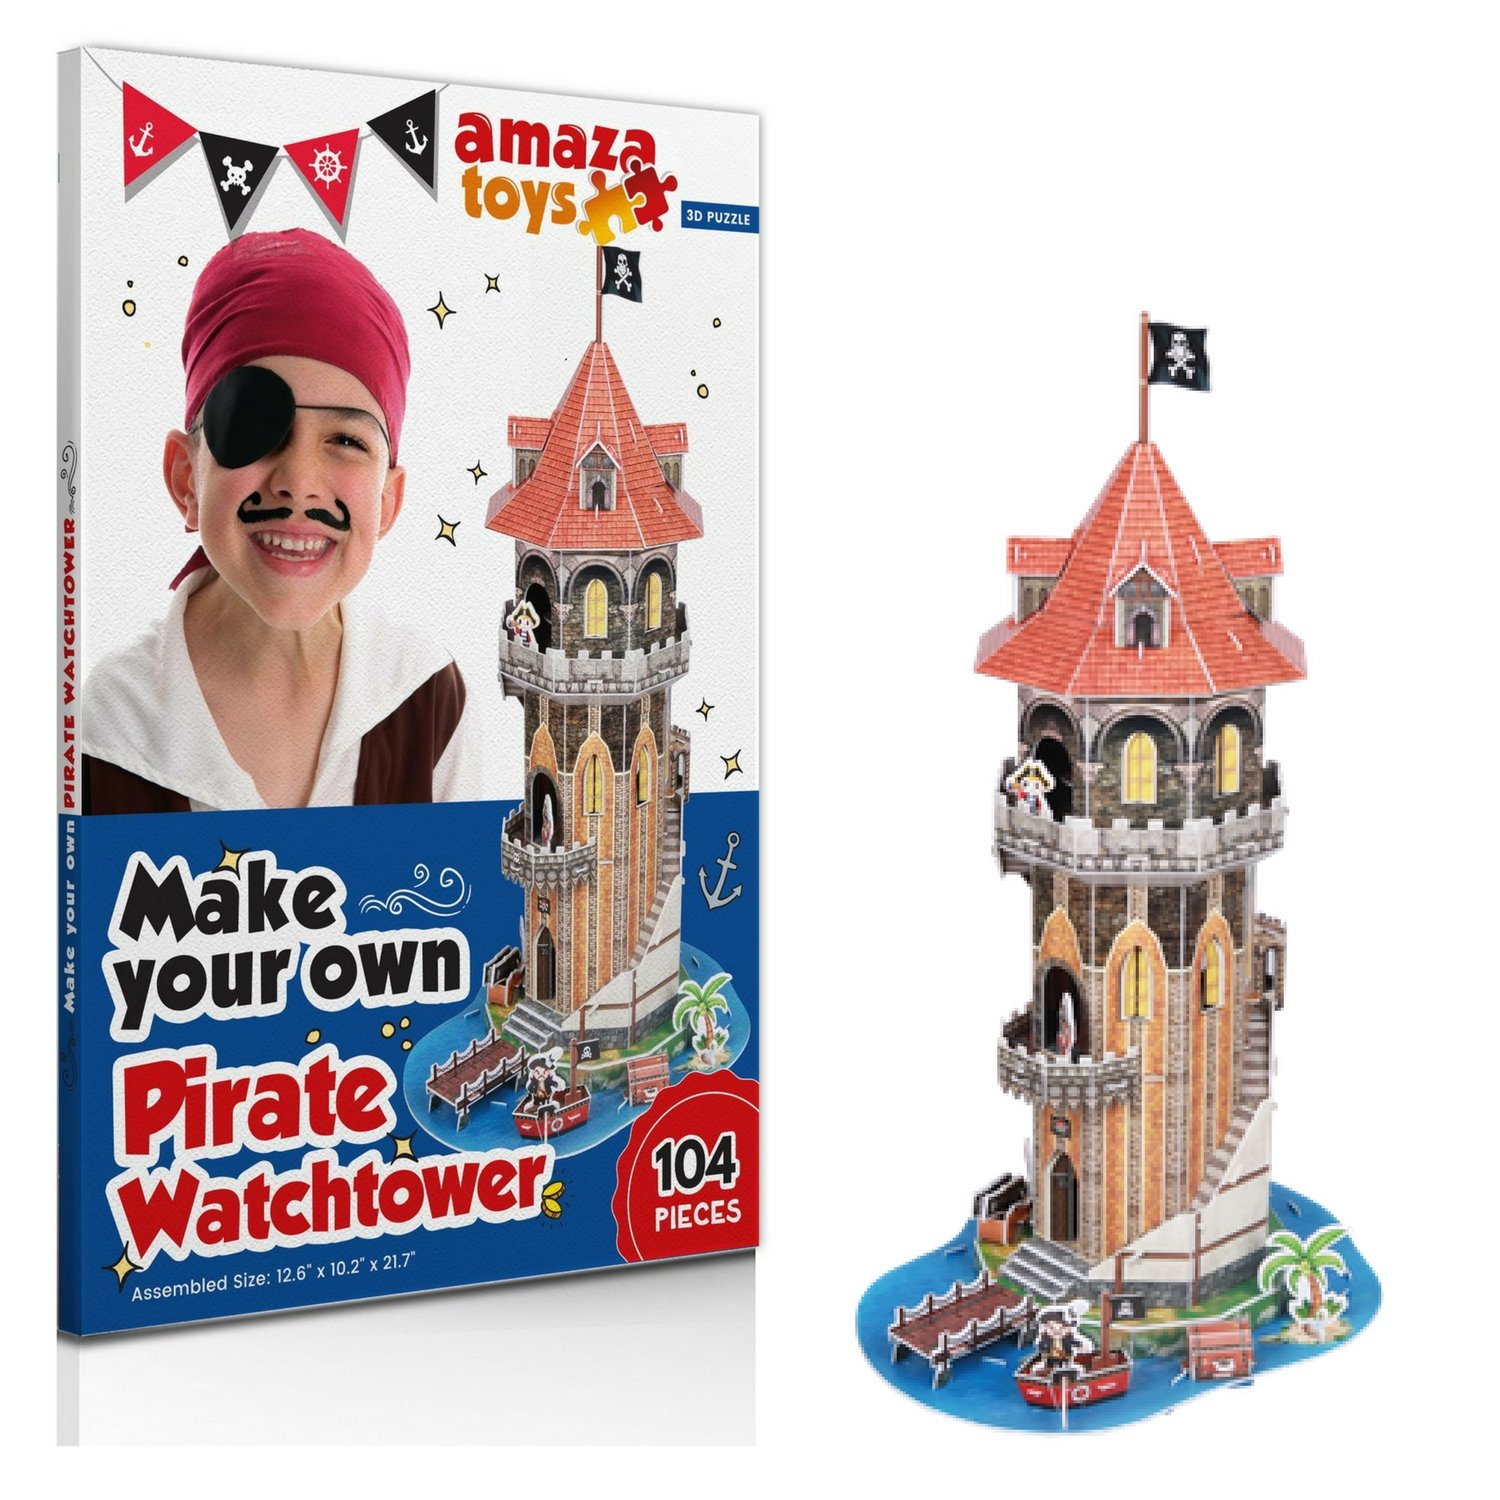 Jigsaw Puzzle Pirate Watchtower - 3D Puzzle Boys Toys - Ideal Gift for Boys 5-10 Educational Toys Craft for Kids (104 pieces)